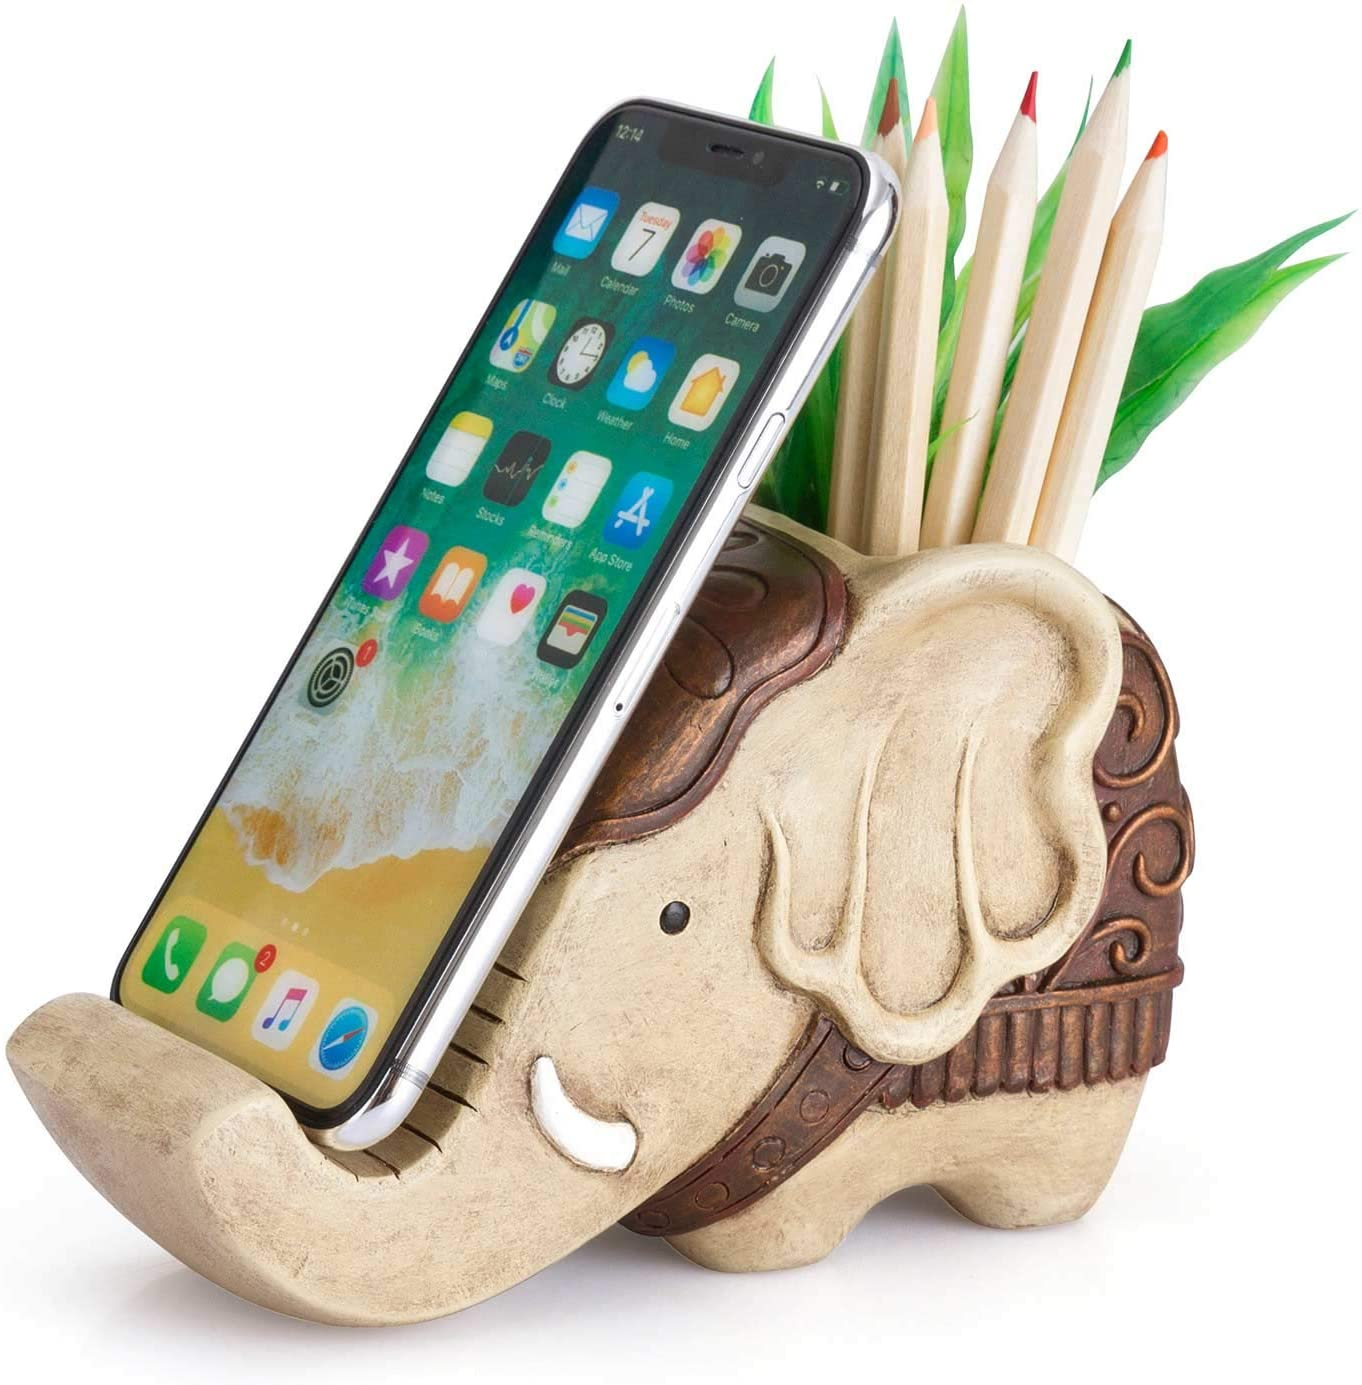 Pen Pencil Holder with Phone Stand, Coolbros Resin Elephant Shaped Pen Container Cell Phone Stand Carving Brush Scissor Holder Desk Organizer Decoration for Office Desk Home Decorative